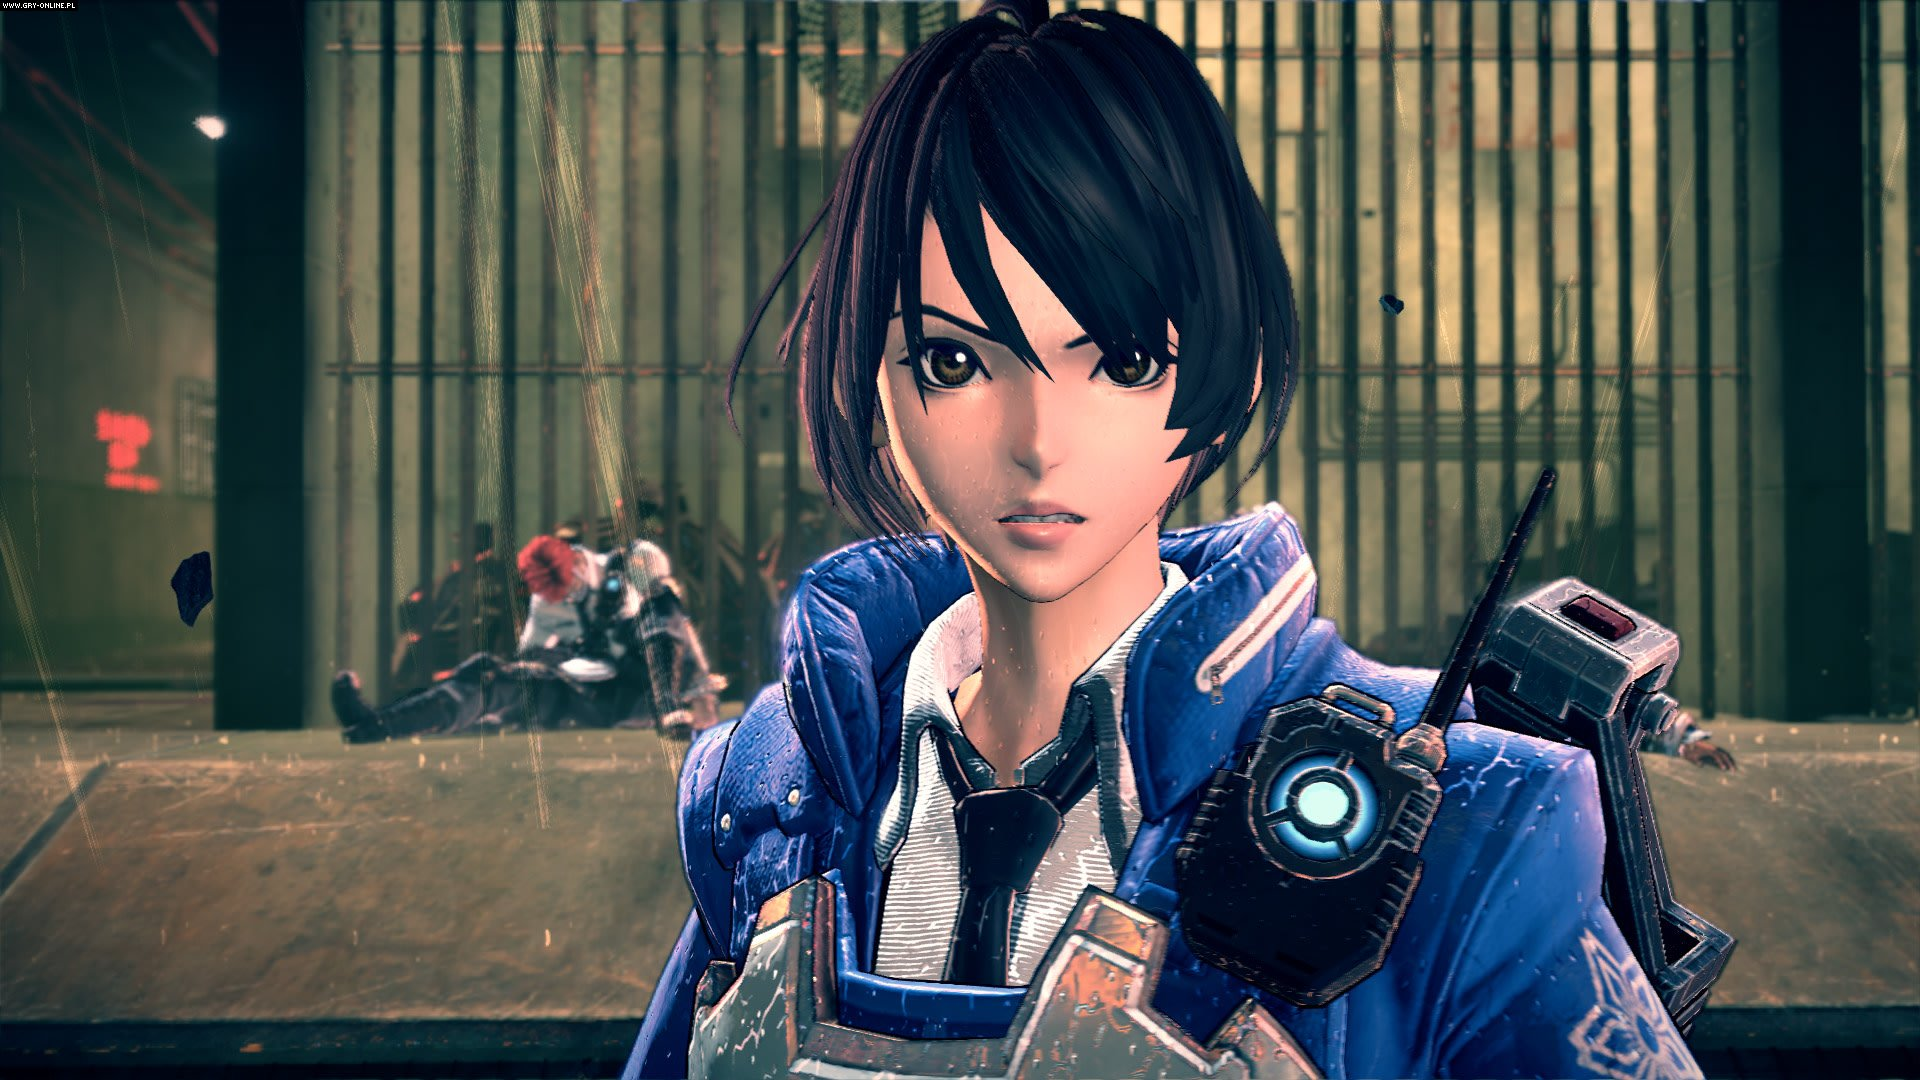 Astral Chain Switch Gry Screen 6/33, PlatinumGames, Nintendo